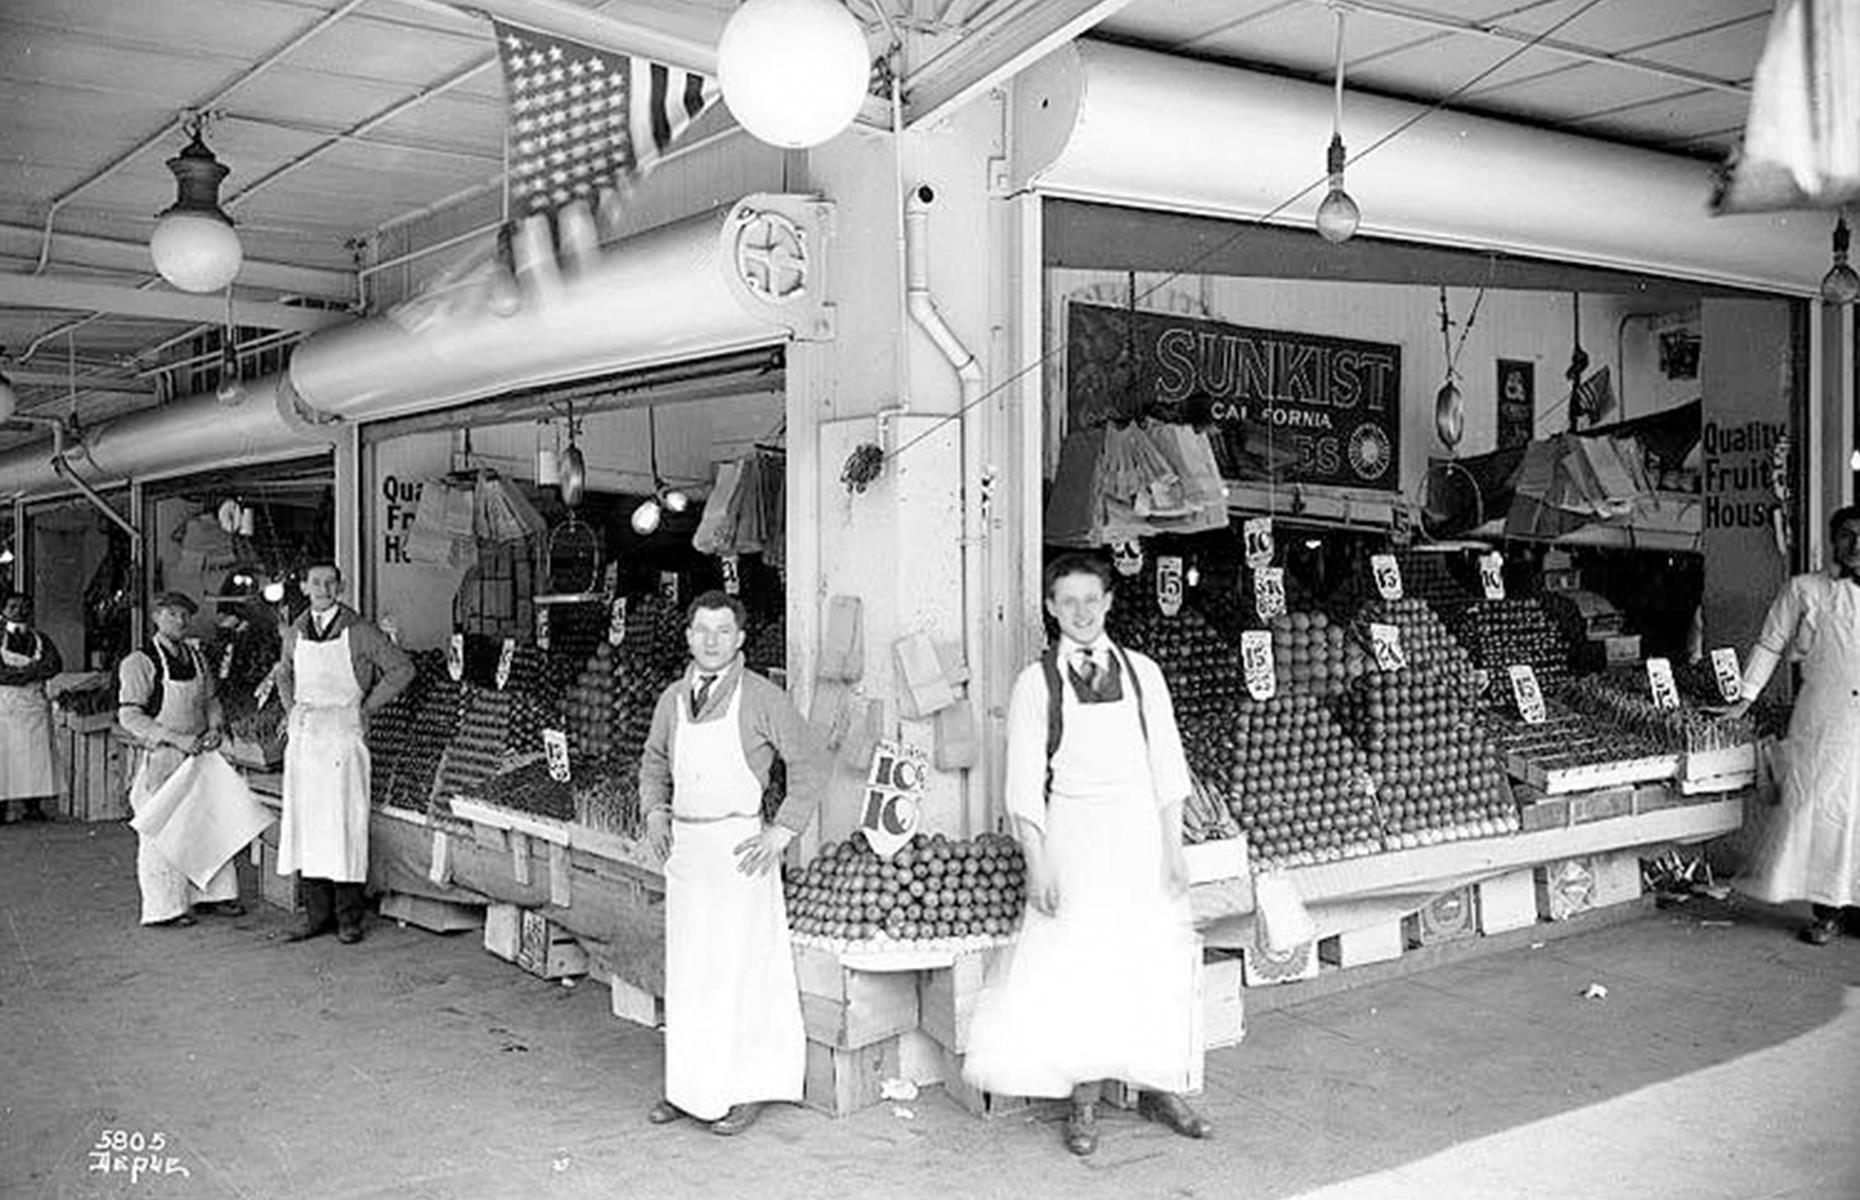 Slide 36 of 47: The first permanent building was constructed later in 1907, housing 76 produce stalls, which heaved under the weight of the season's fresh offerings –here vendors pose before their fruit stall in the 1920s. Today the produce stands are joined by craft stalls, indie boutiques and hip foodie spots too.